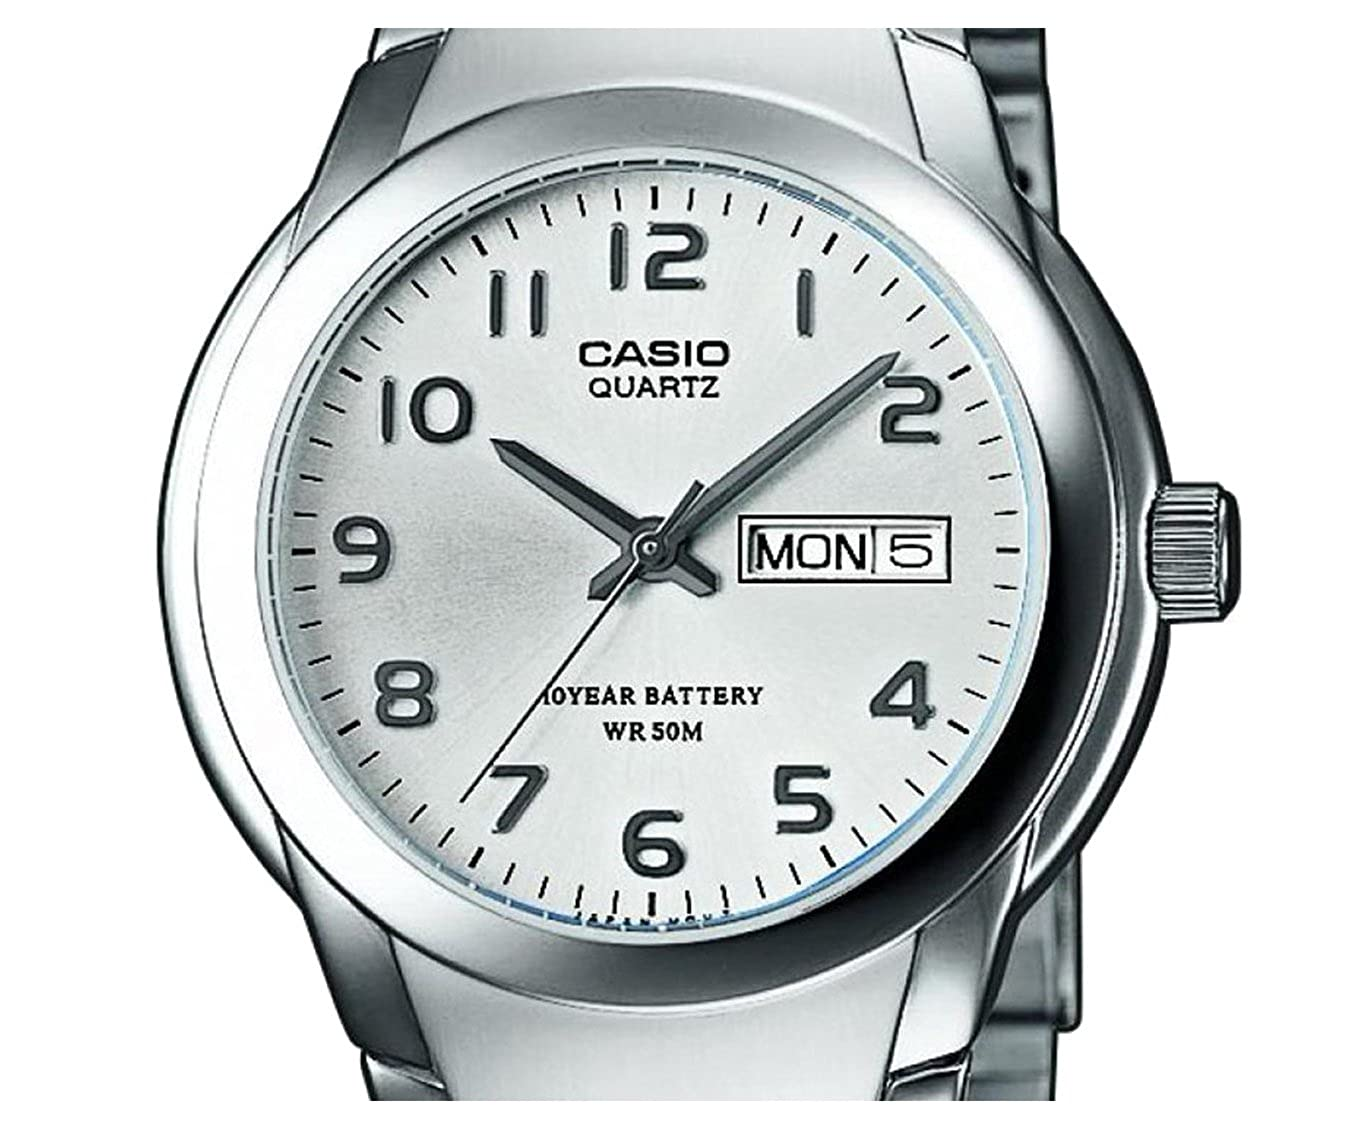 Amazon.com: Casio MTP-1229D-7AVEF Gents Watch Quartz Analogue White Dial Silver Steel Strap: Watches